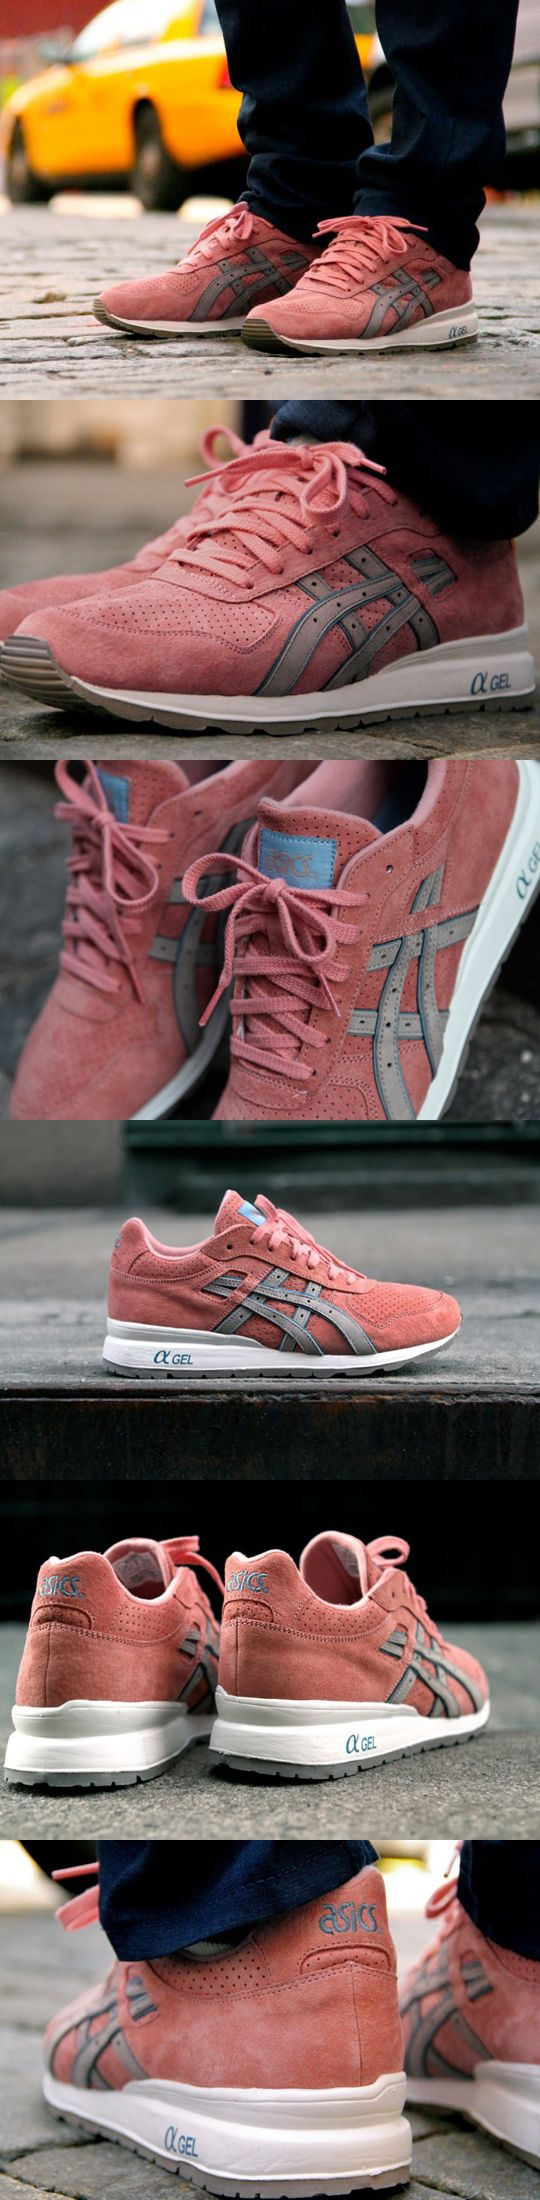 """Asics GT-II """"Rose Gold"""" x Ronnie Fieg I want these!"""